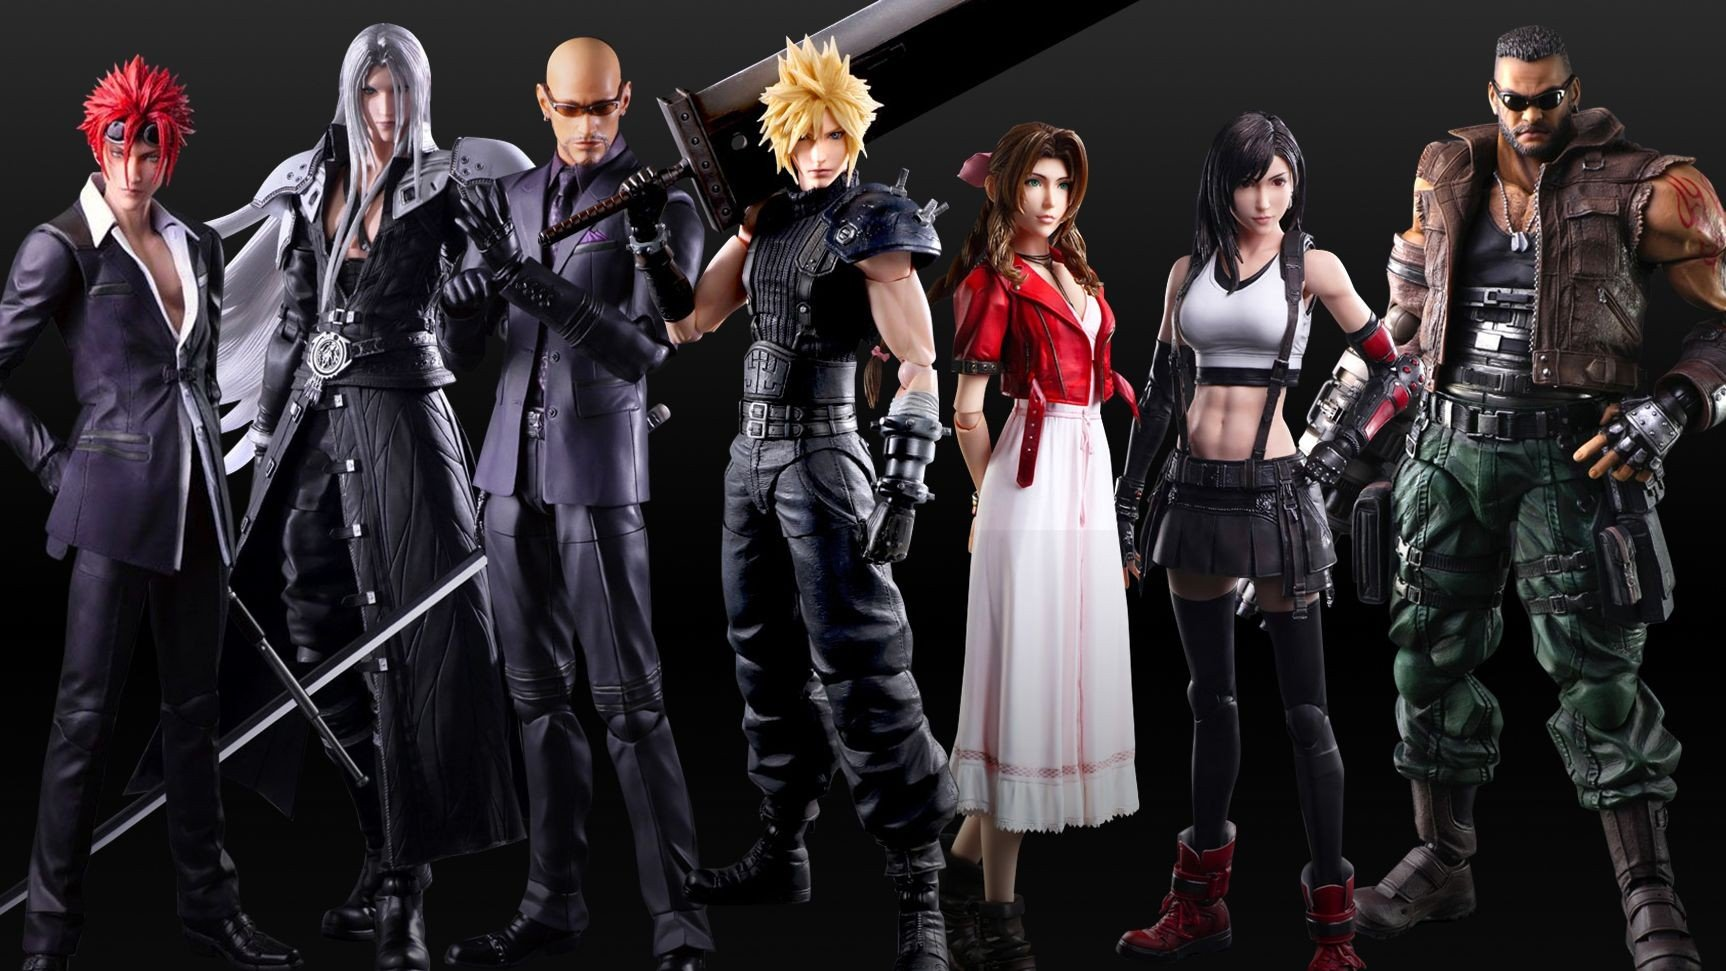 Final Fantasy Vii Remake Play Arts Line Adds Reno Rude And Sephiroth